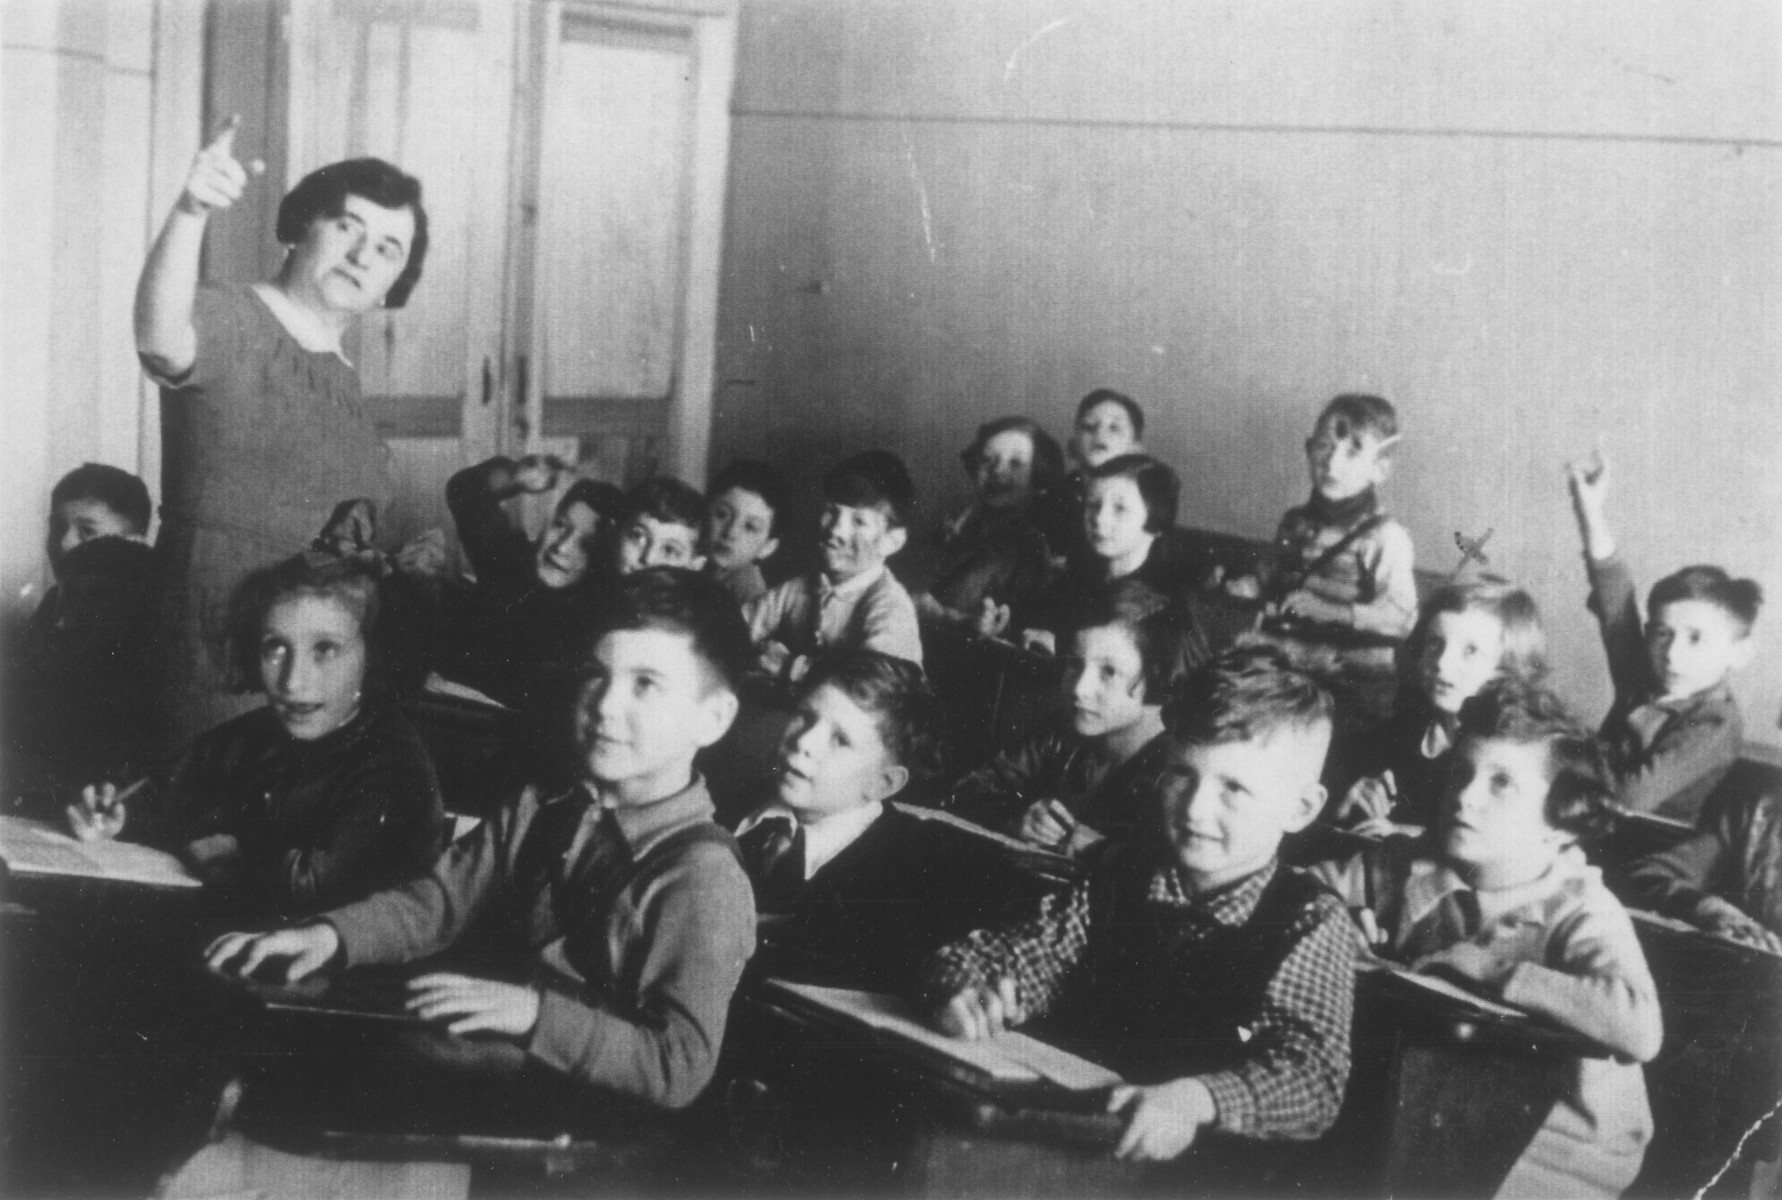 Students sit at their desks in a first grade classroom in Berlin.  Hannelore Mansbacher is sitting on the right side in front of the child who is holding up his hand. The teacher, Hilde Goldschmitt, later emigrated to Israel.